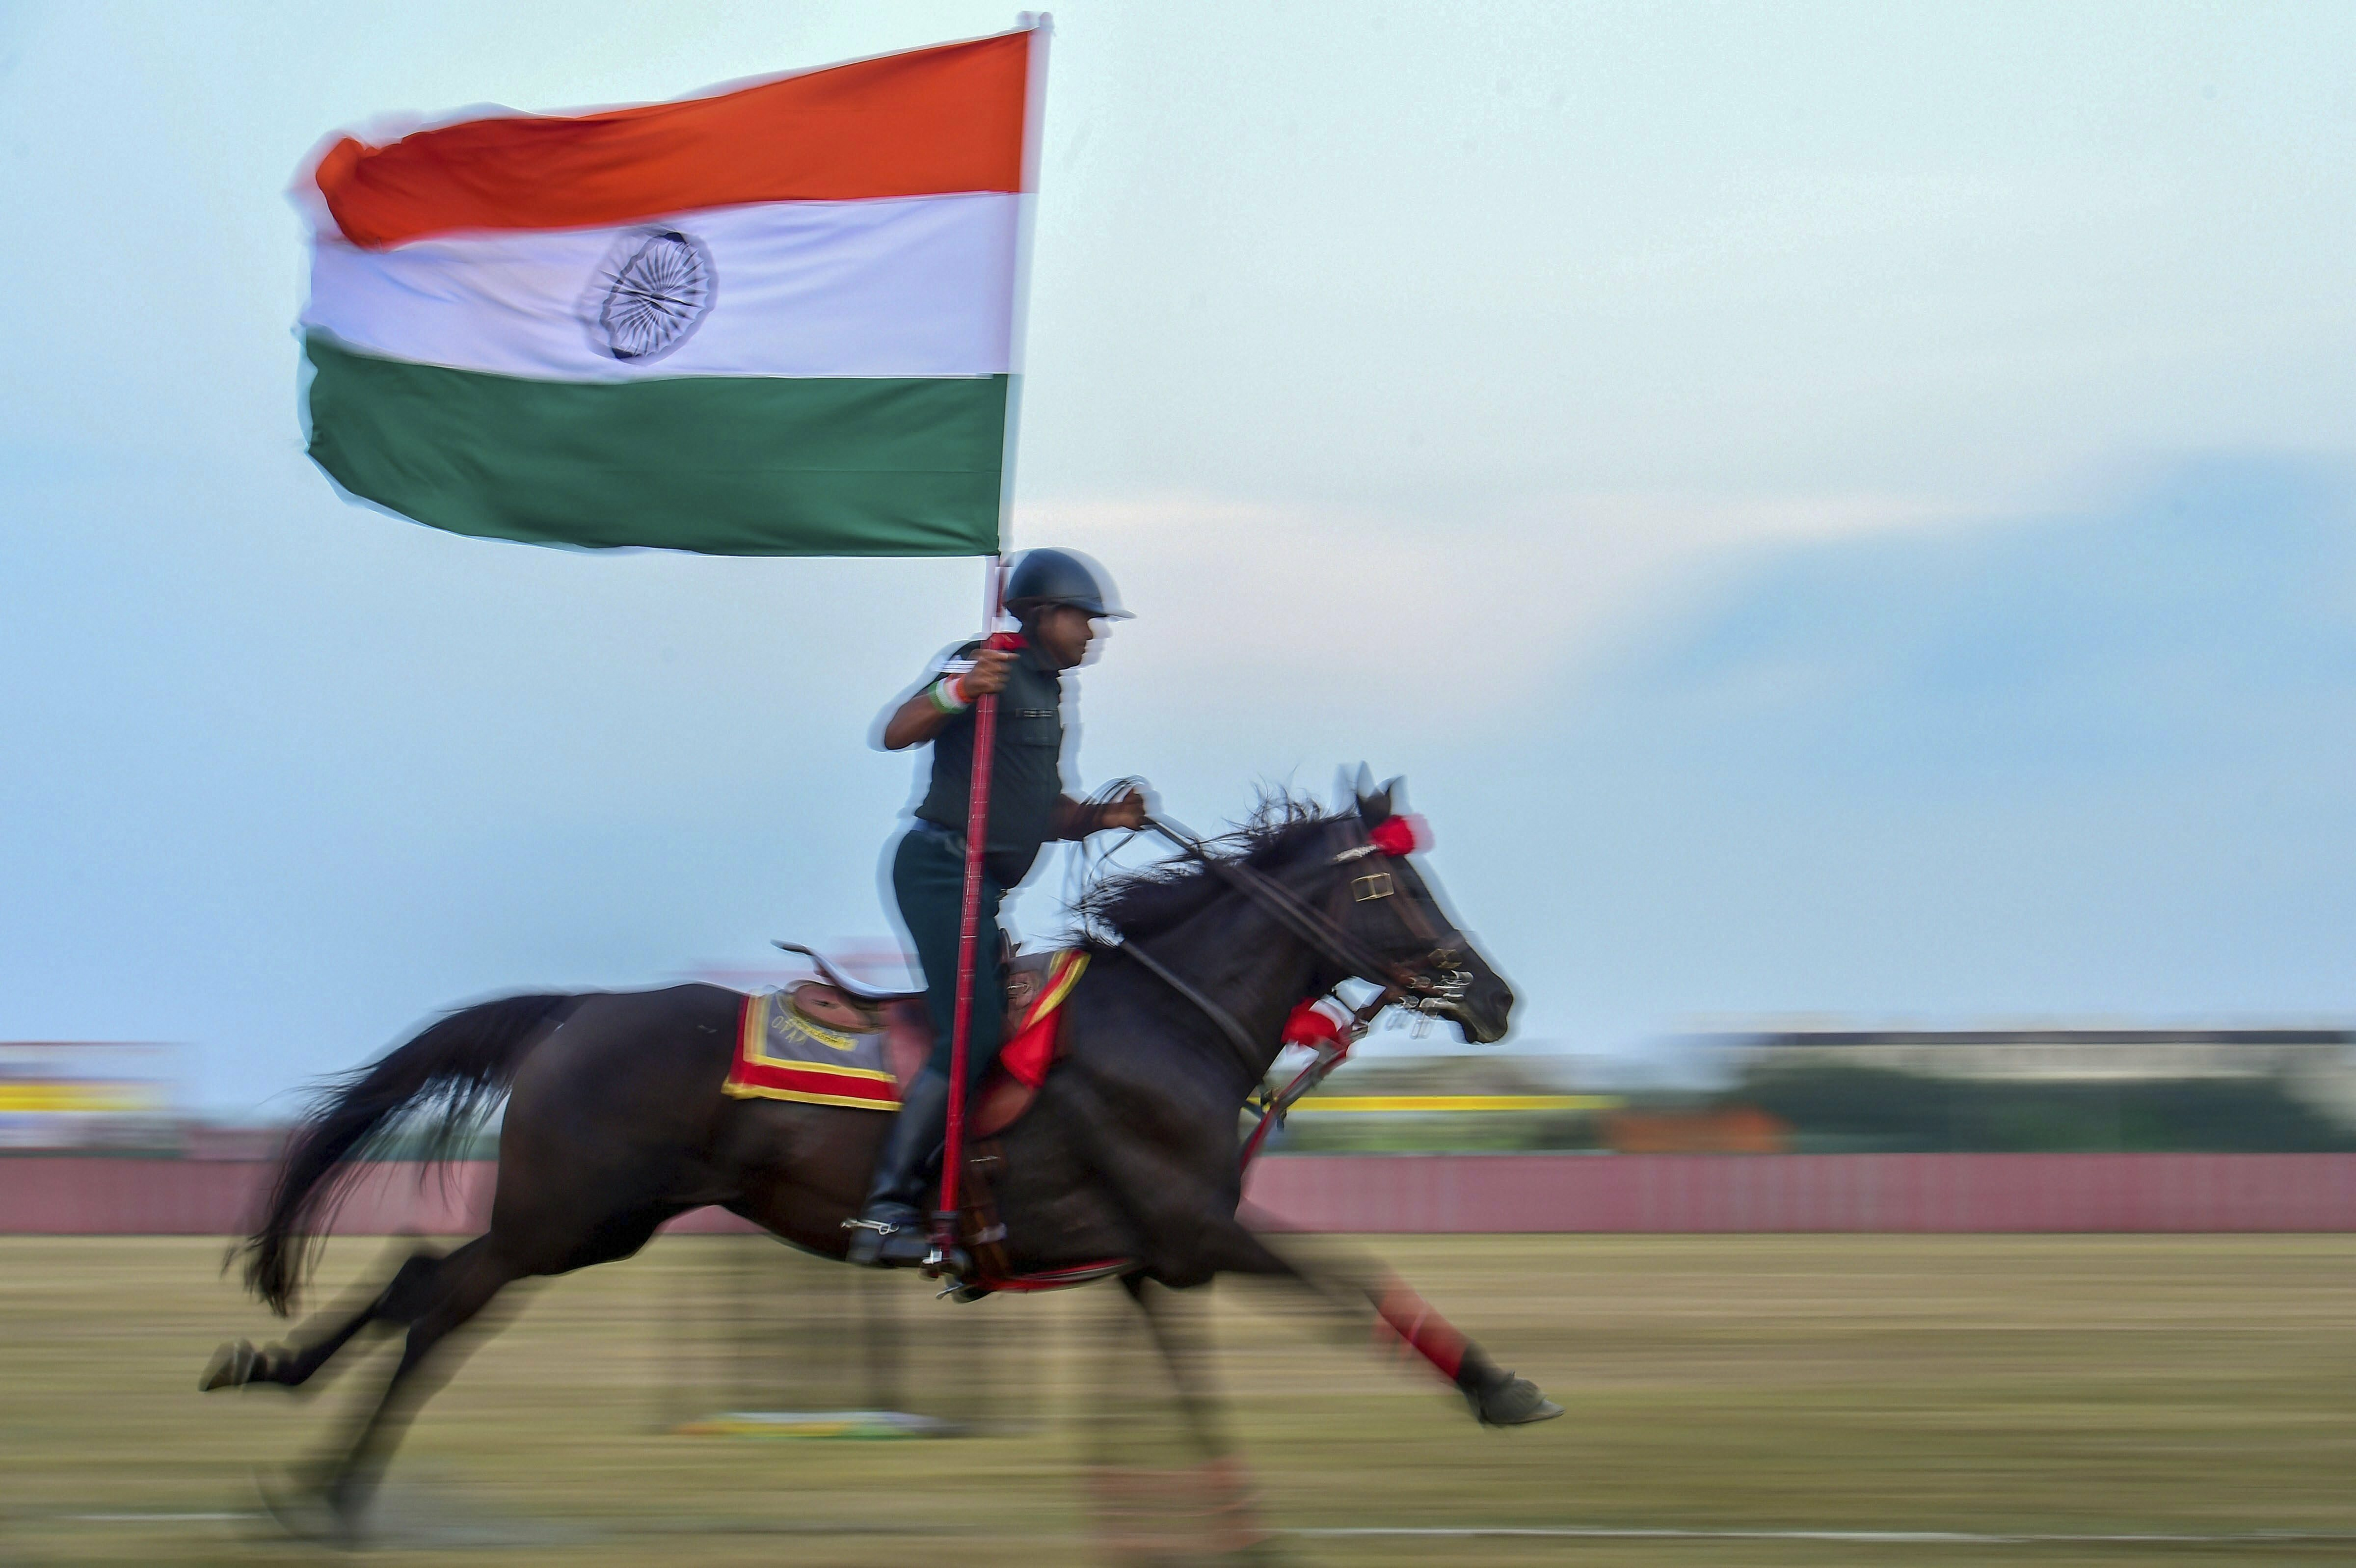 An army personnel holding the Tricolor displays his horse riding skill during the combined display of martial arts and combat skills by the cadets at Officers Training Academy (OTA) in Chennai - PTI